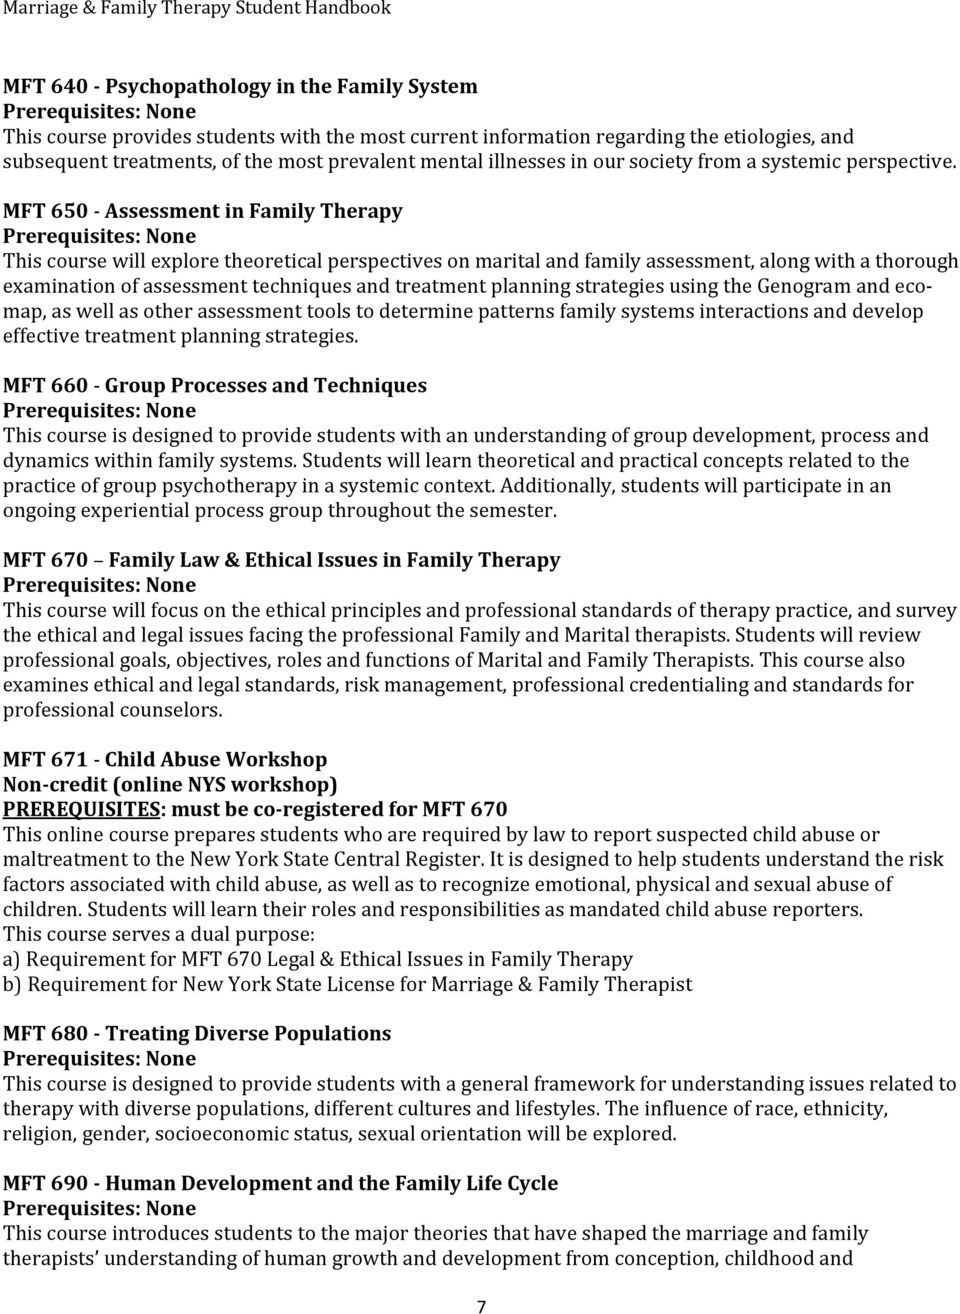 MFT 650 - Assessment in Family Therapy This course will explore theoretical perspectives on marital and family assessment, along with a thorough examination of assessment techniques and treatment